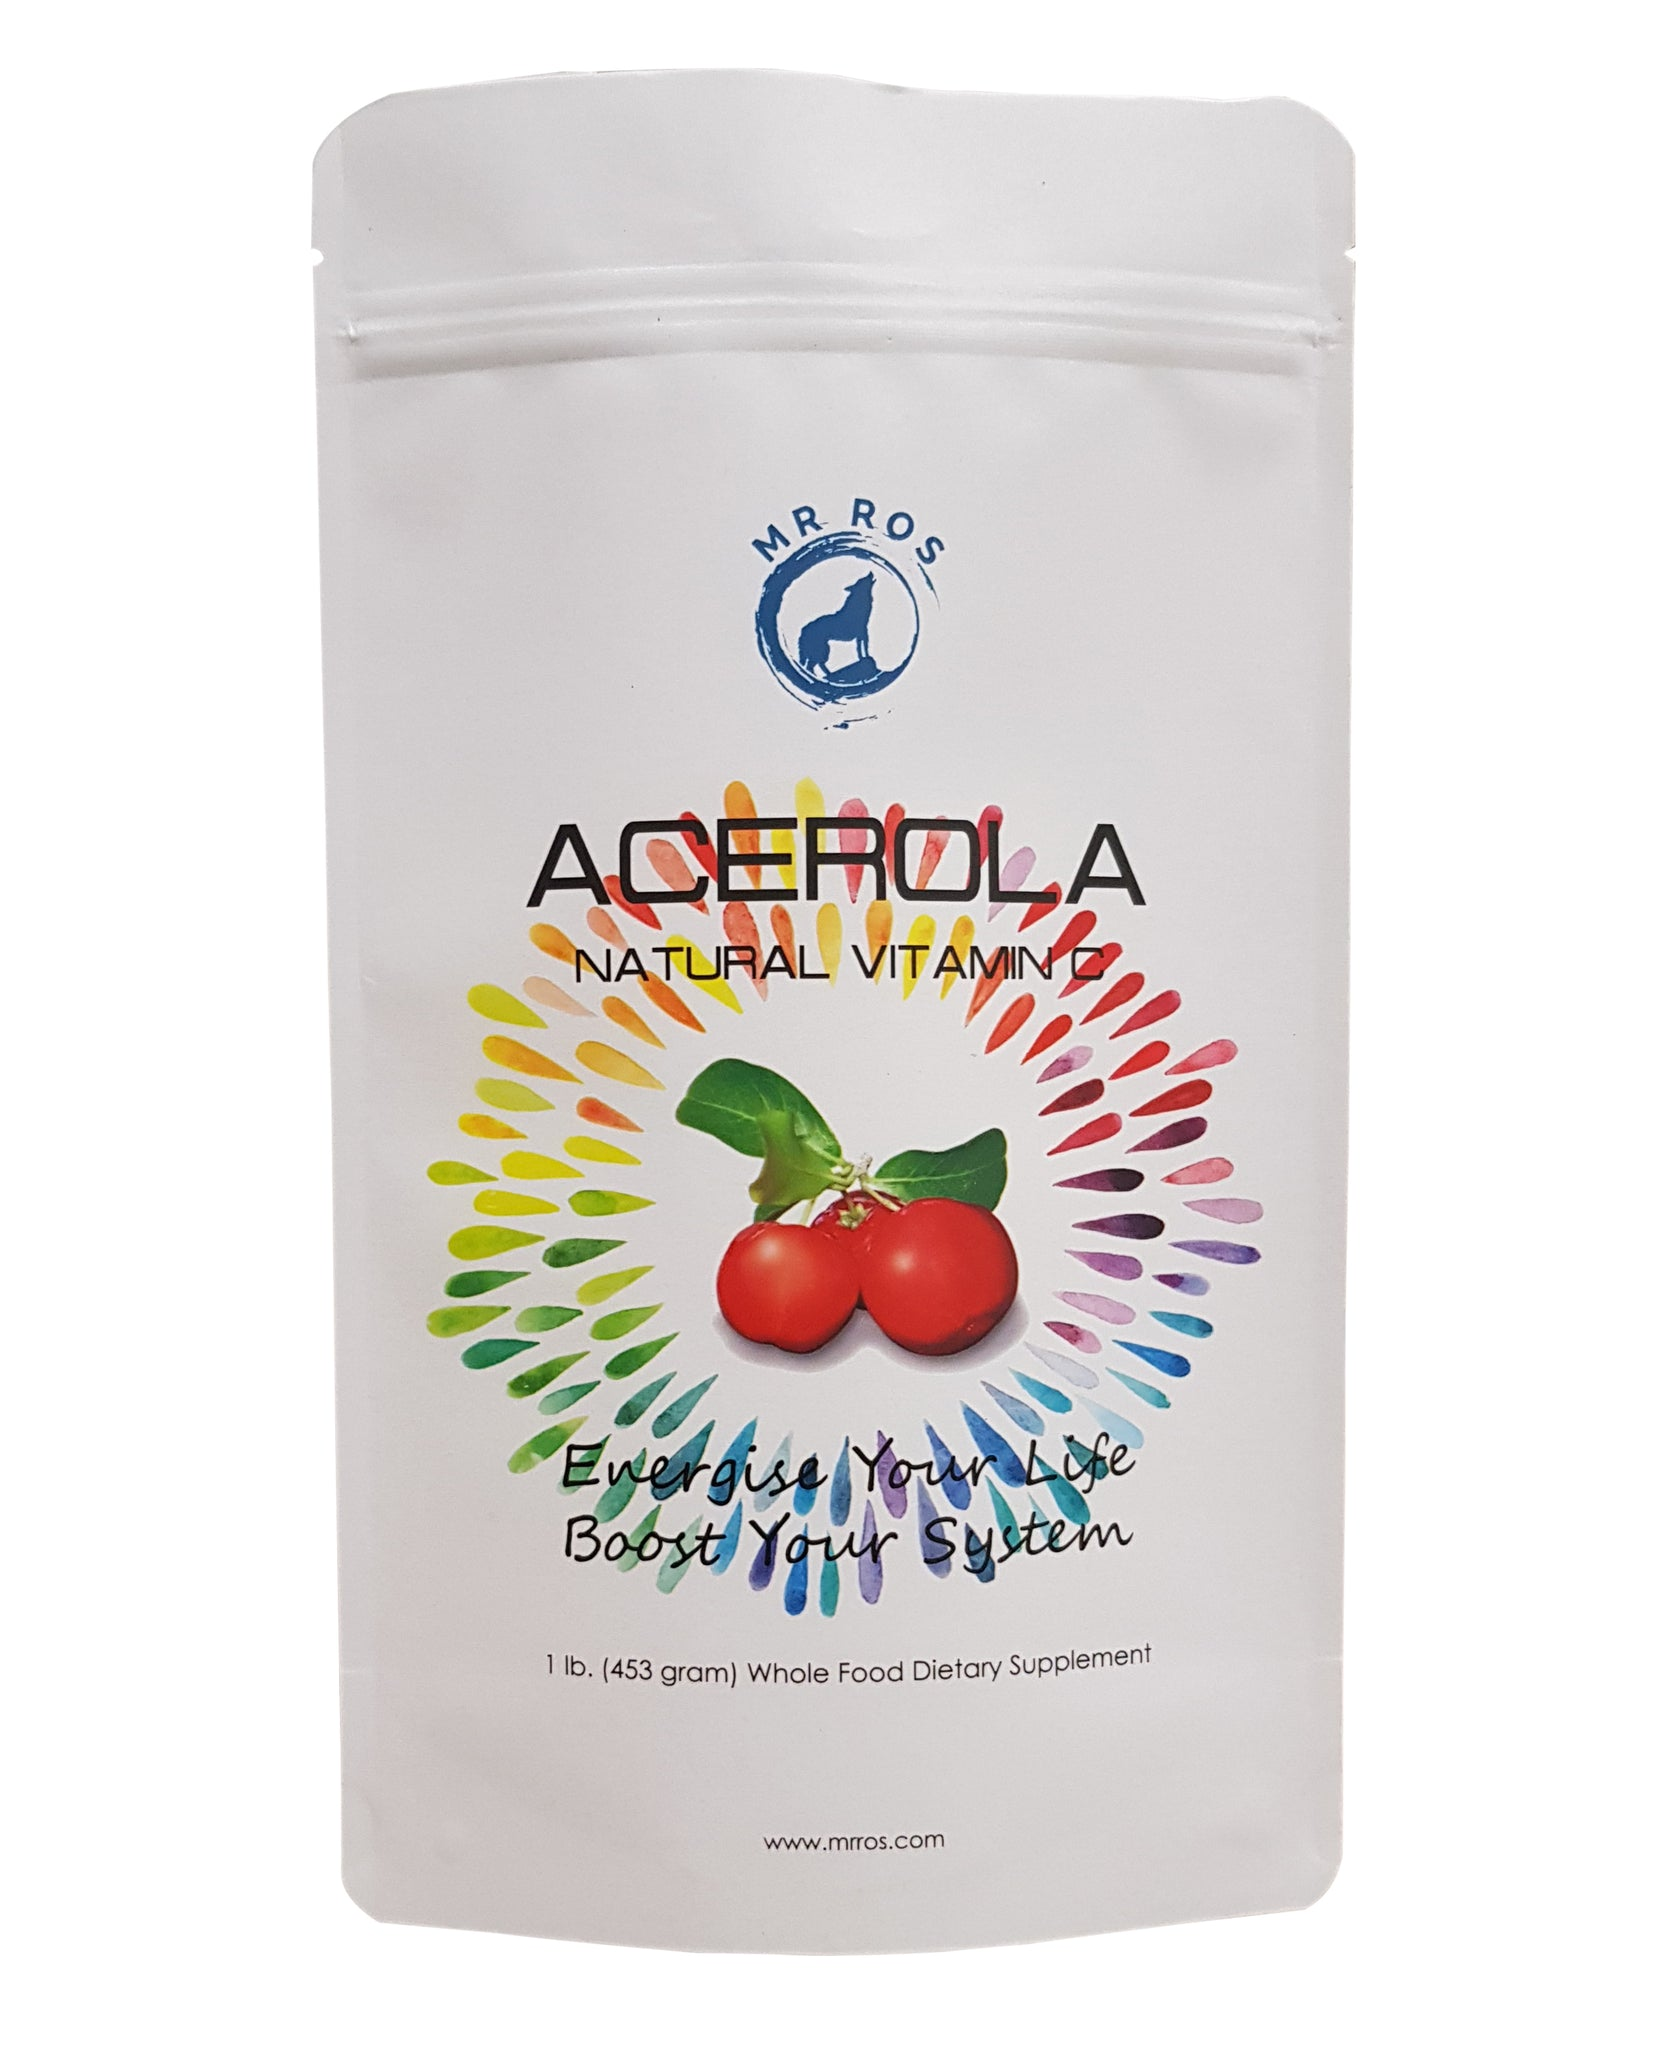 Natural Vitamin C Vitamins Acerola Powder-1 Lb (16 Oz-453 grams) by Mr Ros-100% Pure From Organic Origin - Mr Ros Natural Premium Superfoods